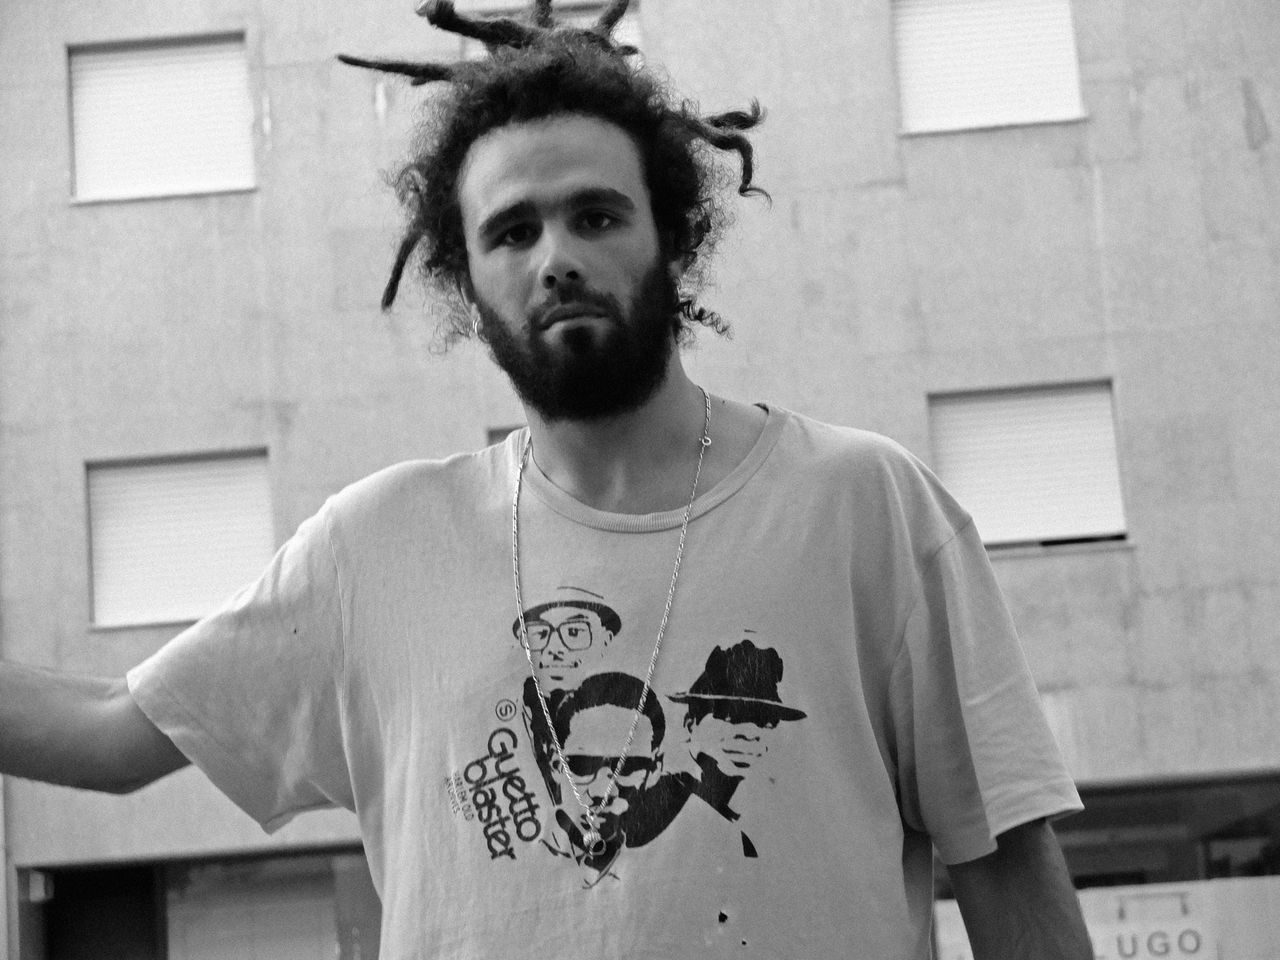 Blackandwhite Brother Casual Clothing Guettoblaster Lifestyles Portrait Portugal RASTA The Portraitist - 2016 EyeEm Awards Monochrome Photography